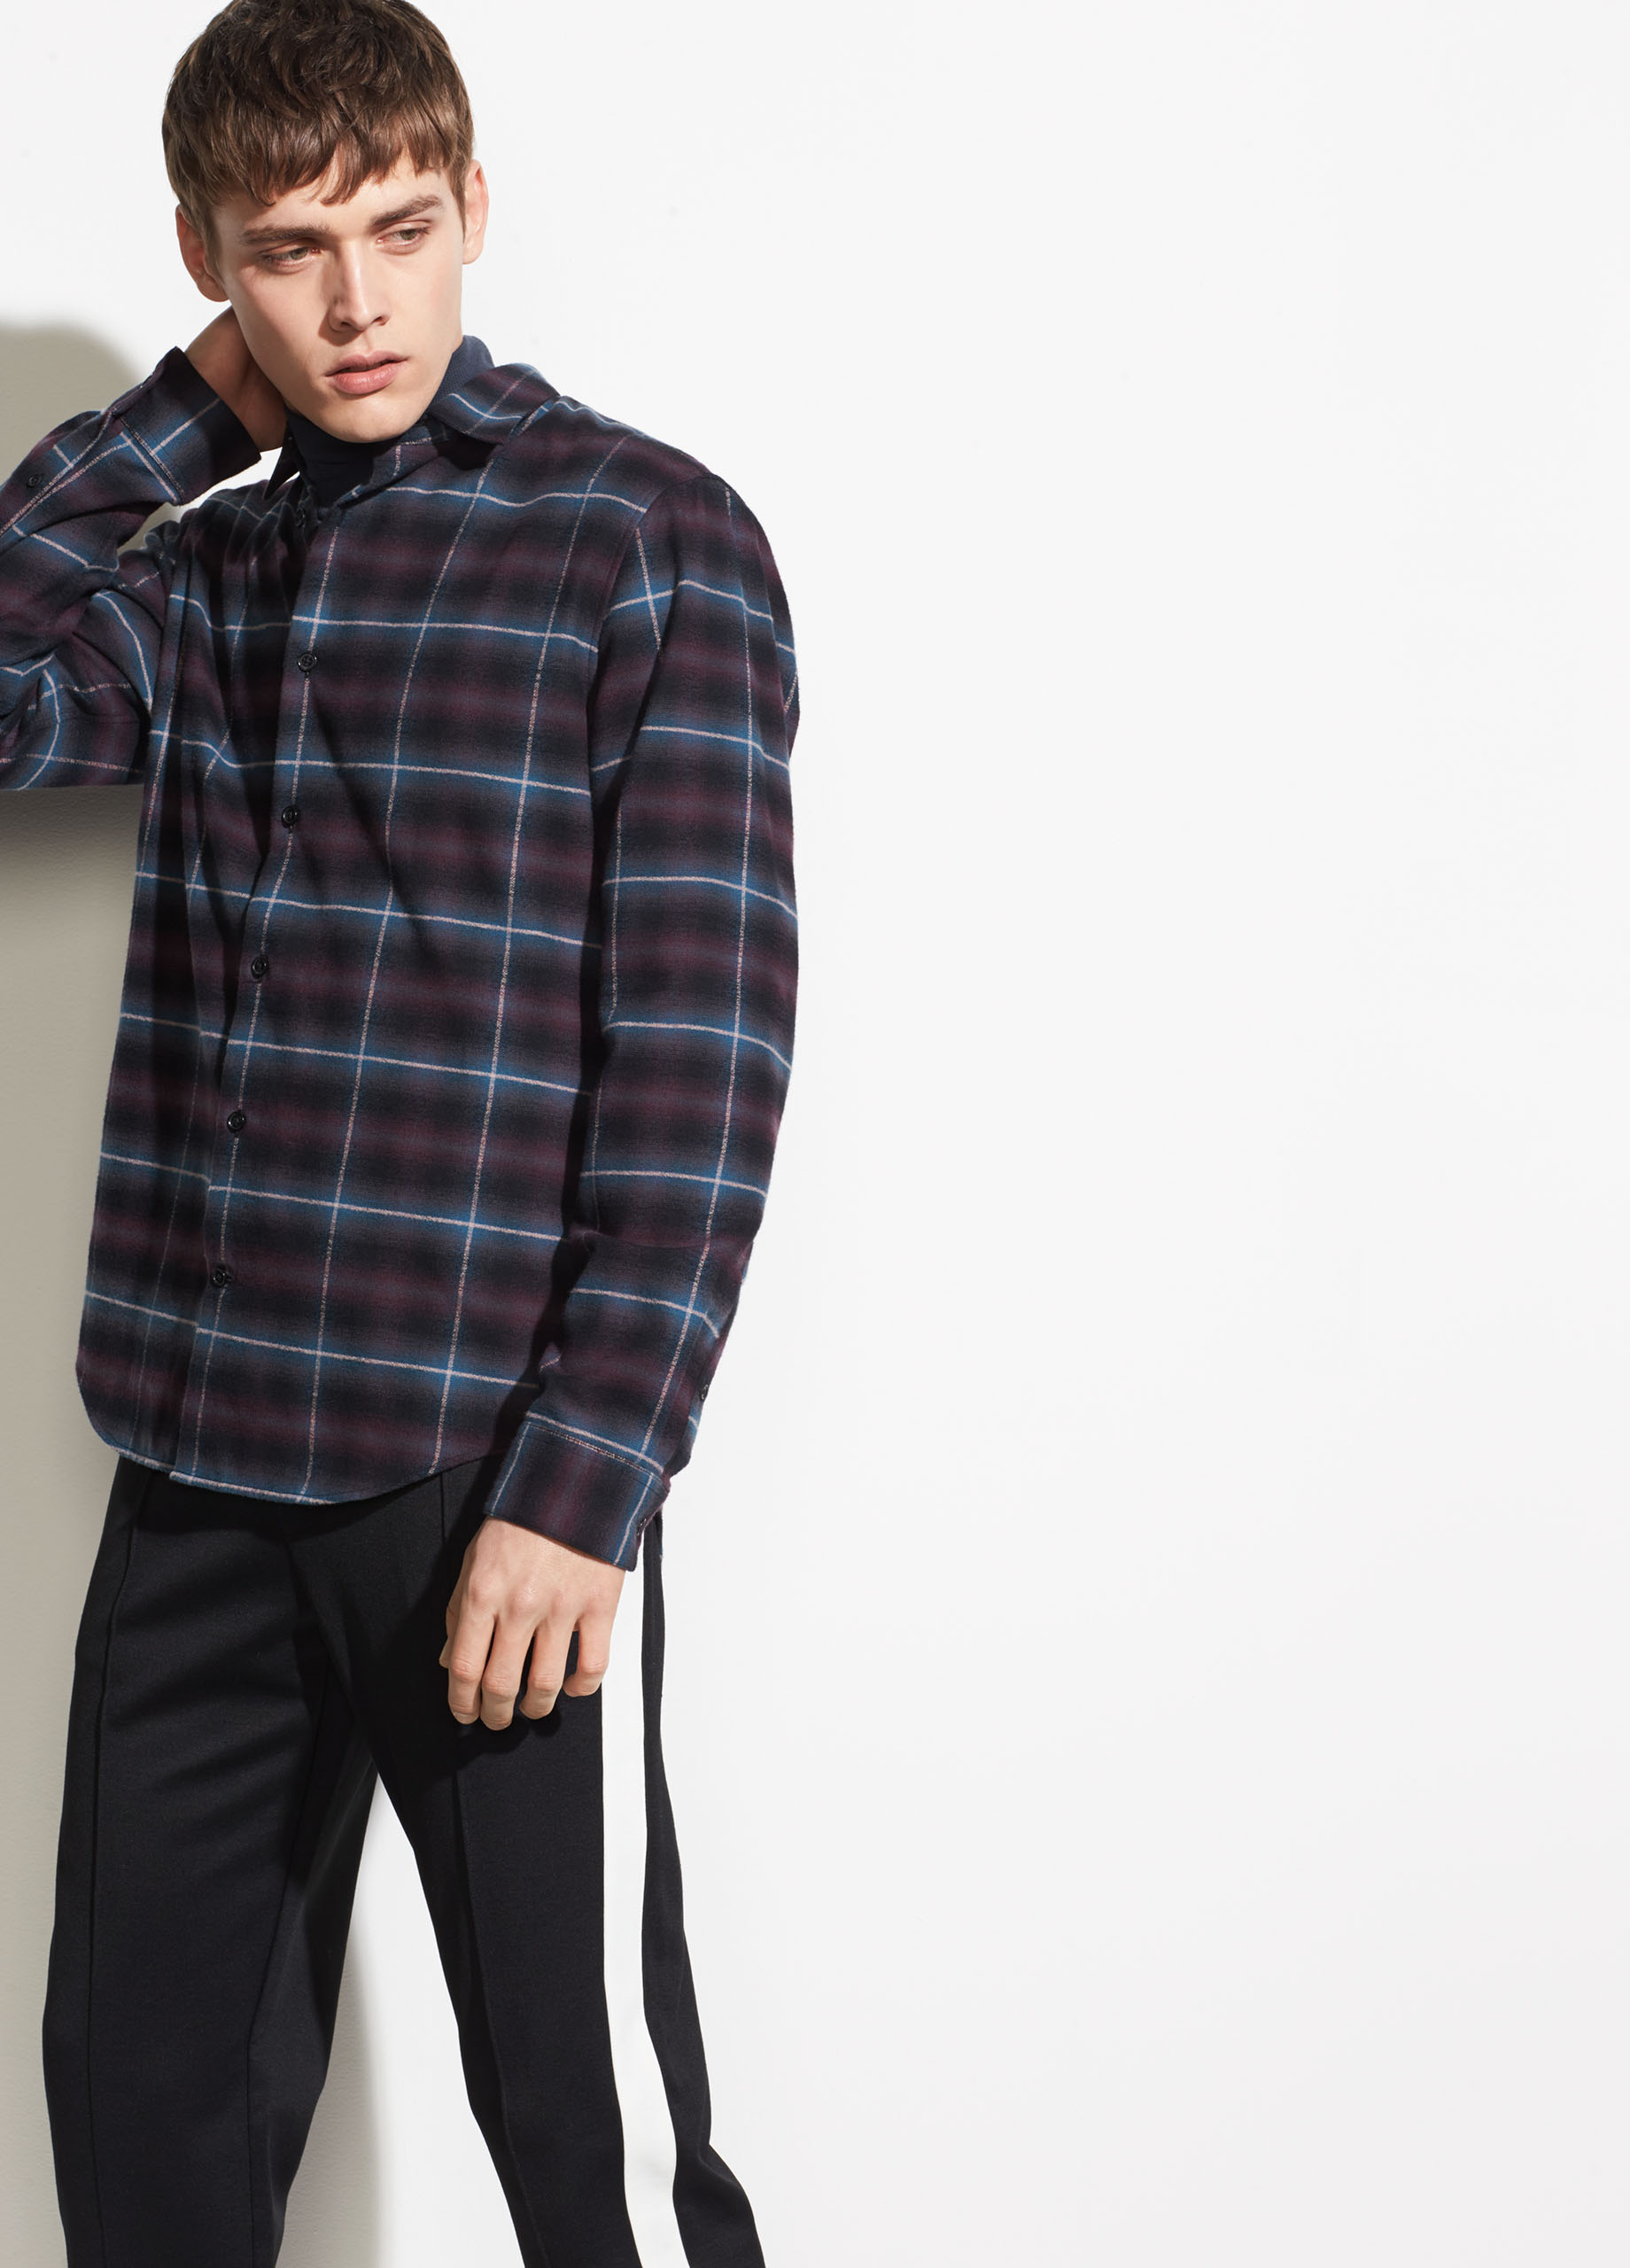 Vince. Shadow Plaid Flannel Shirt, $195